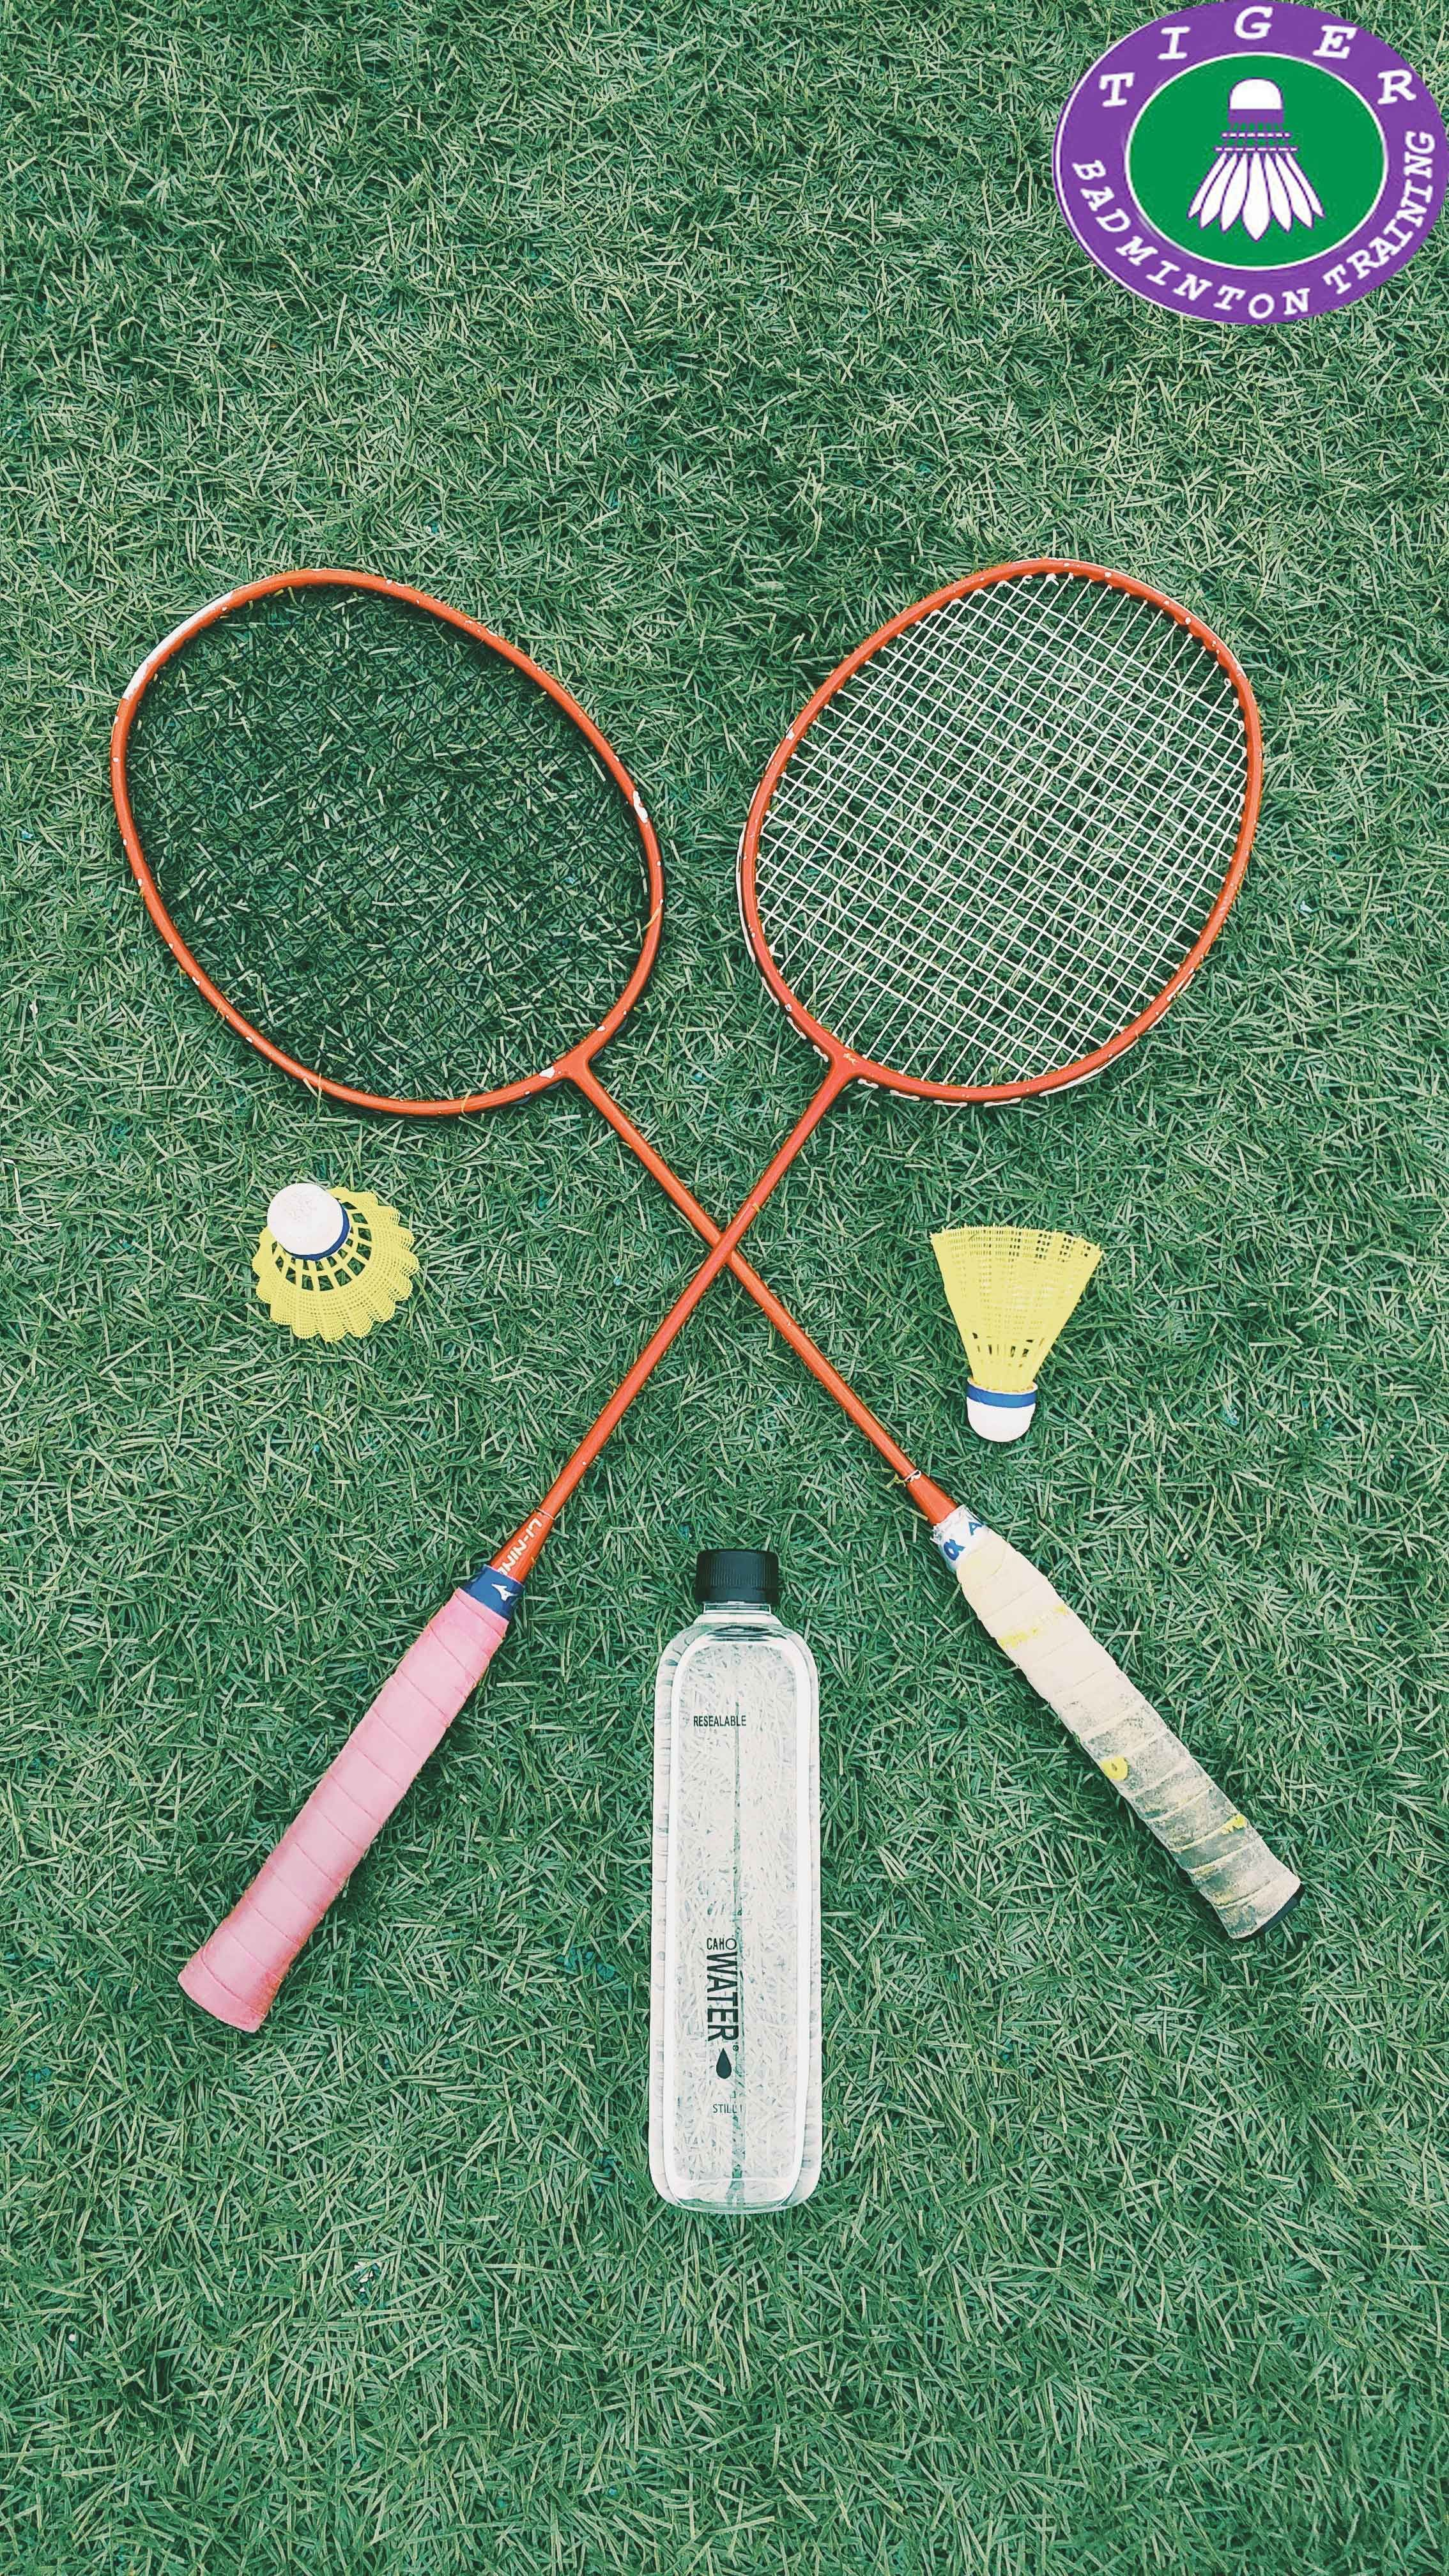 Olympic Badminton Information In English Badminton Olympic Badminton Yonex Badminton Racket